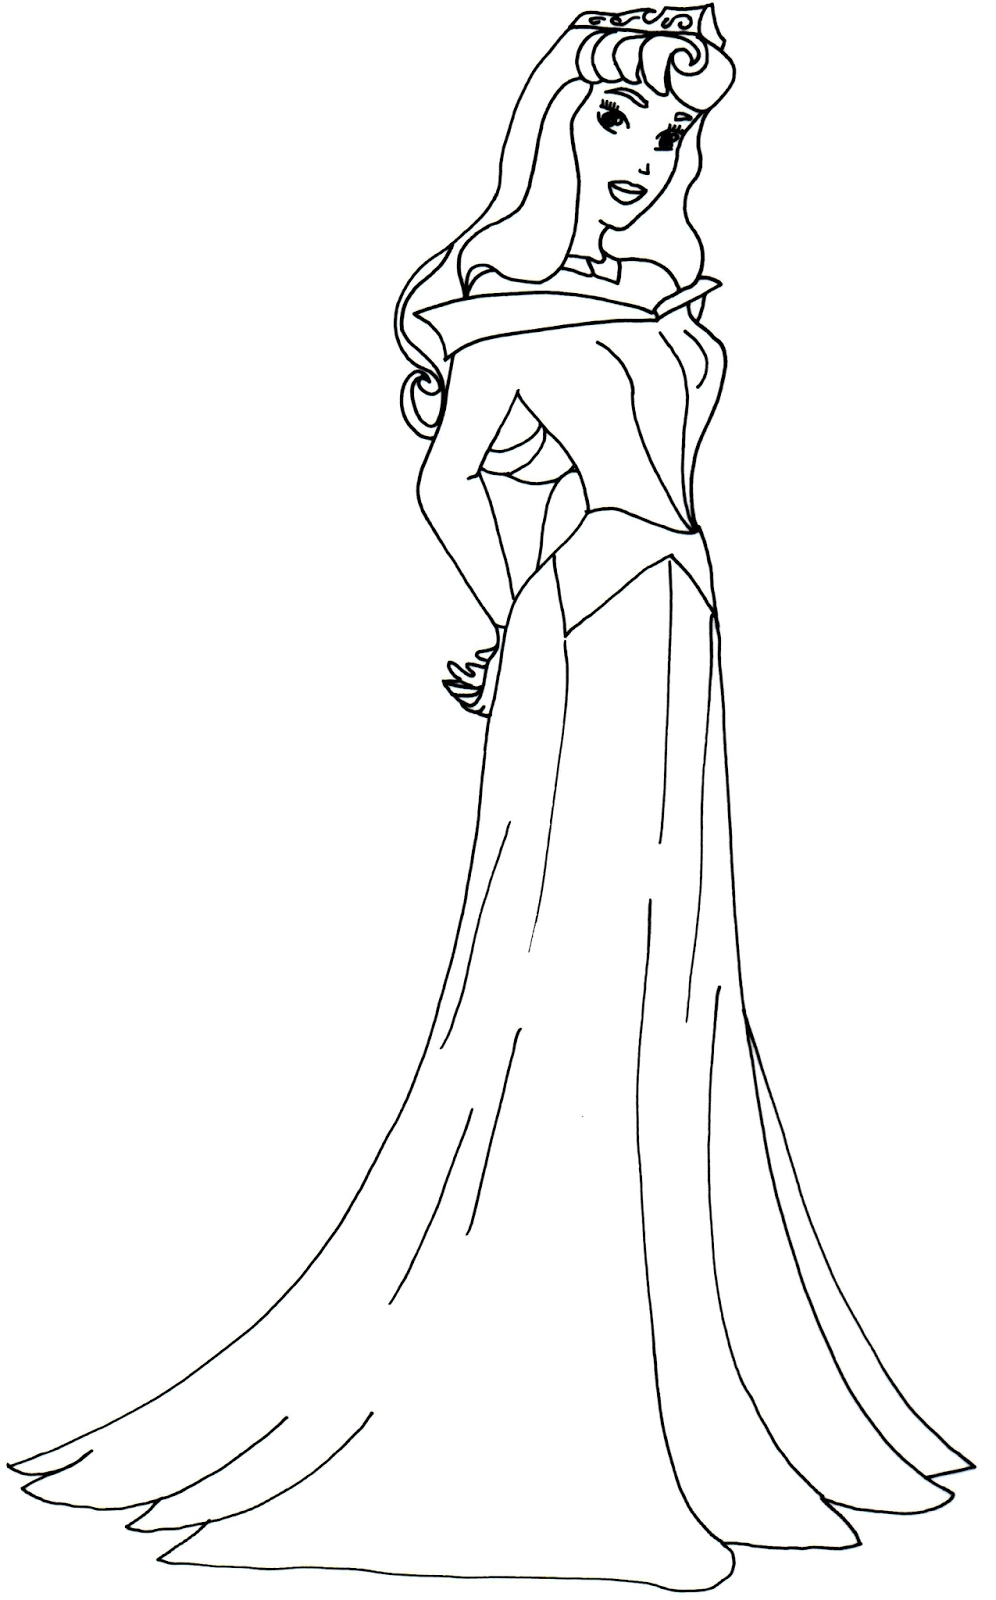 996x1600 Awesome Princess Aurora Coloring Pages Design Printable Coloring